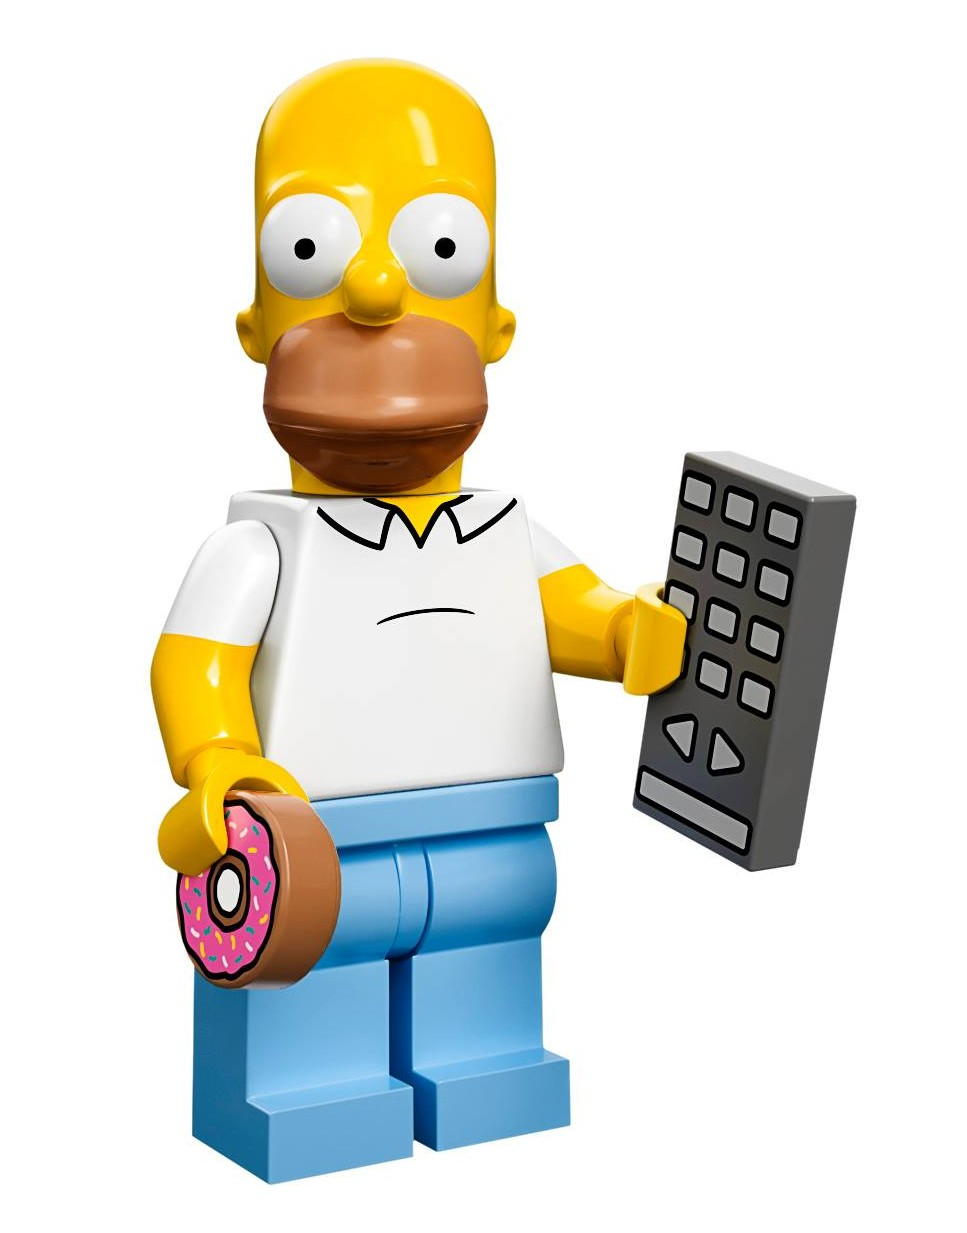 Lego simpsons minifigures series photos fully revealed - Homer simpson and bart simpson ...